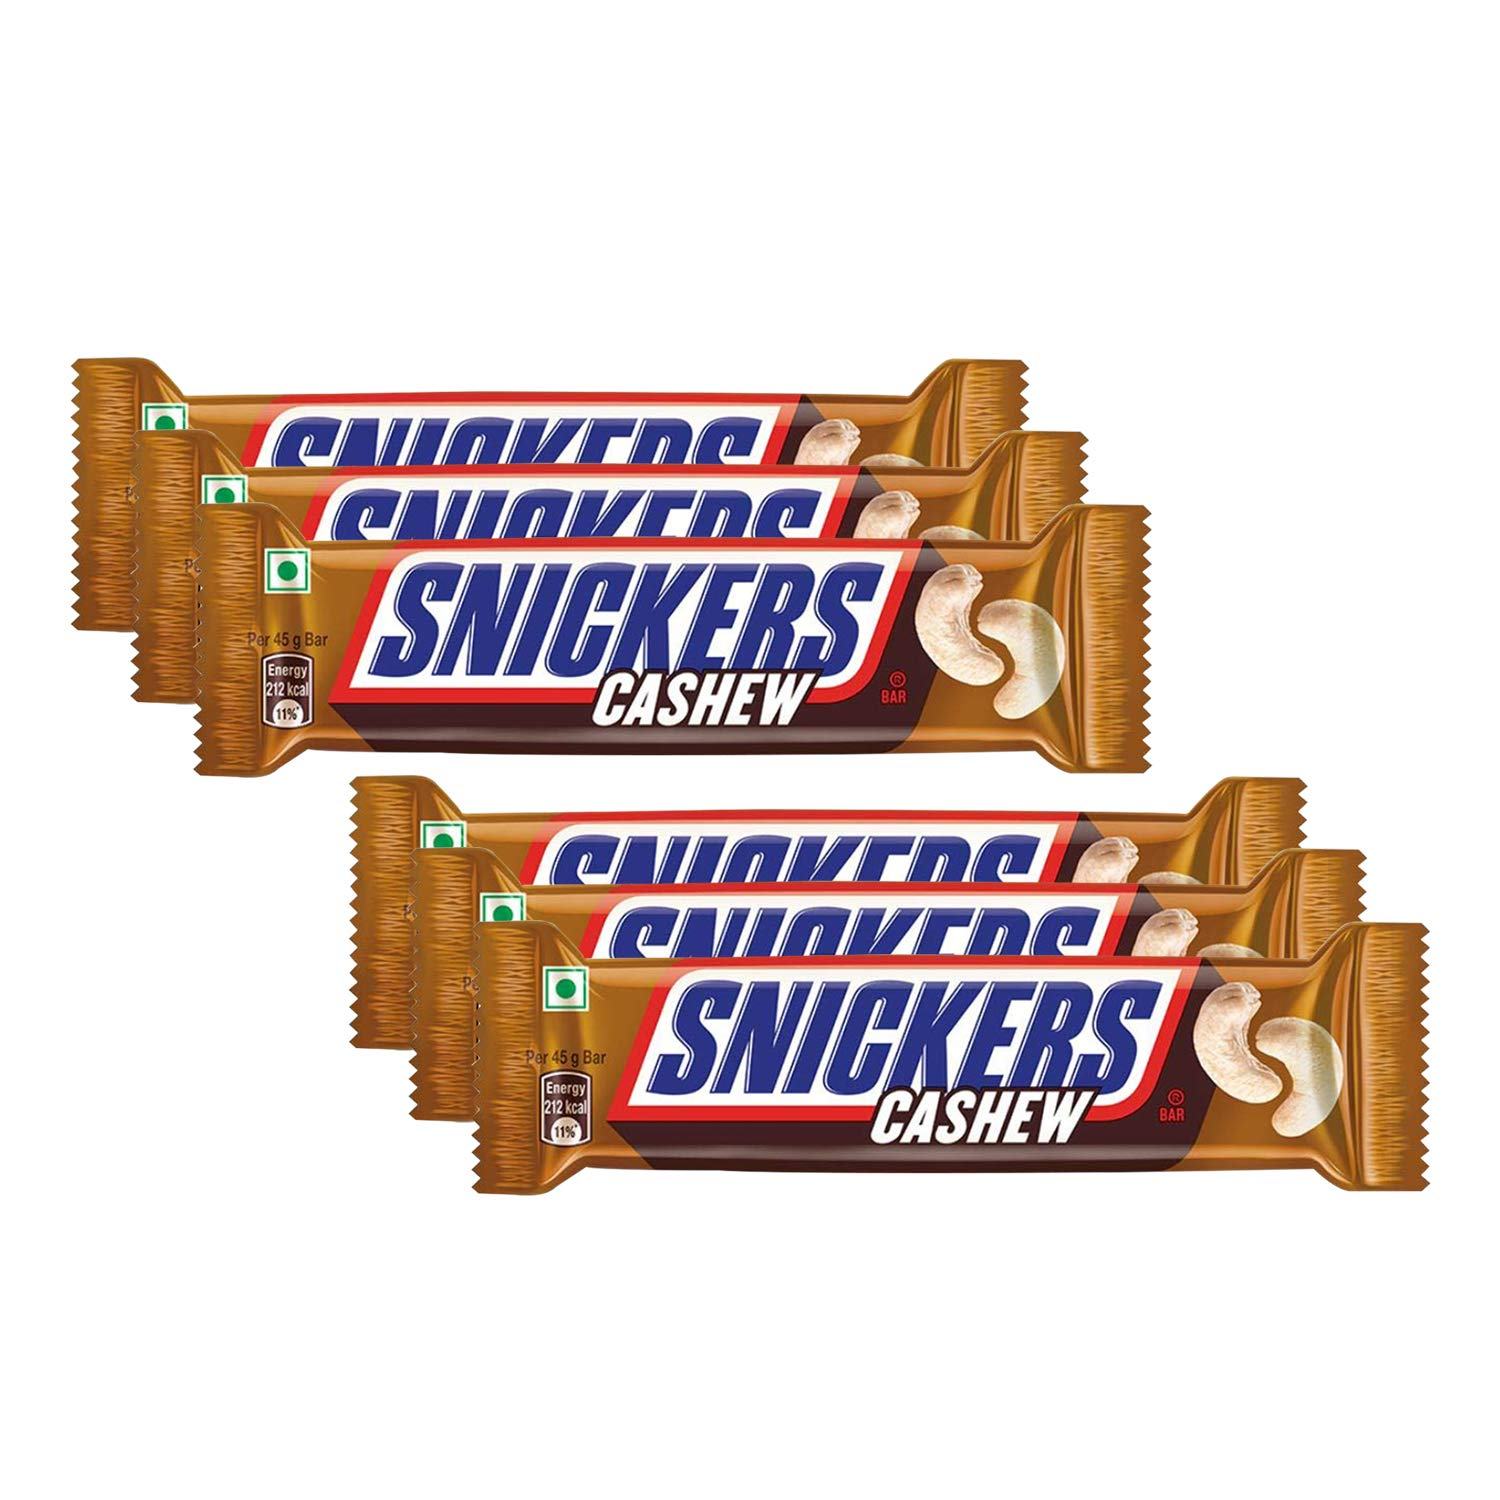 Snickers Cashew Filled Chocolate Bars 45gm x Pack of 6